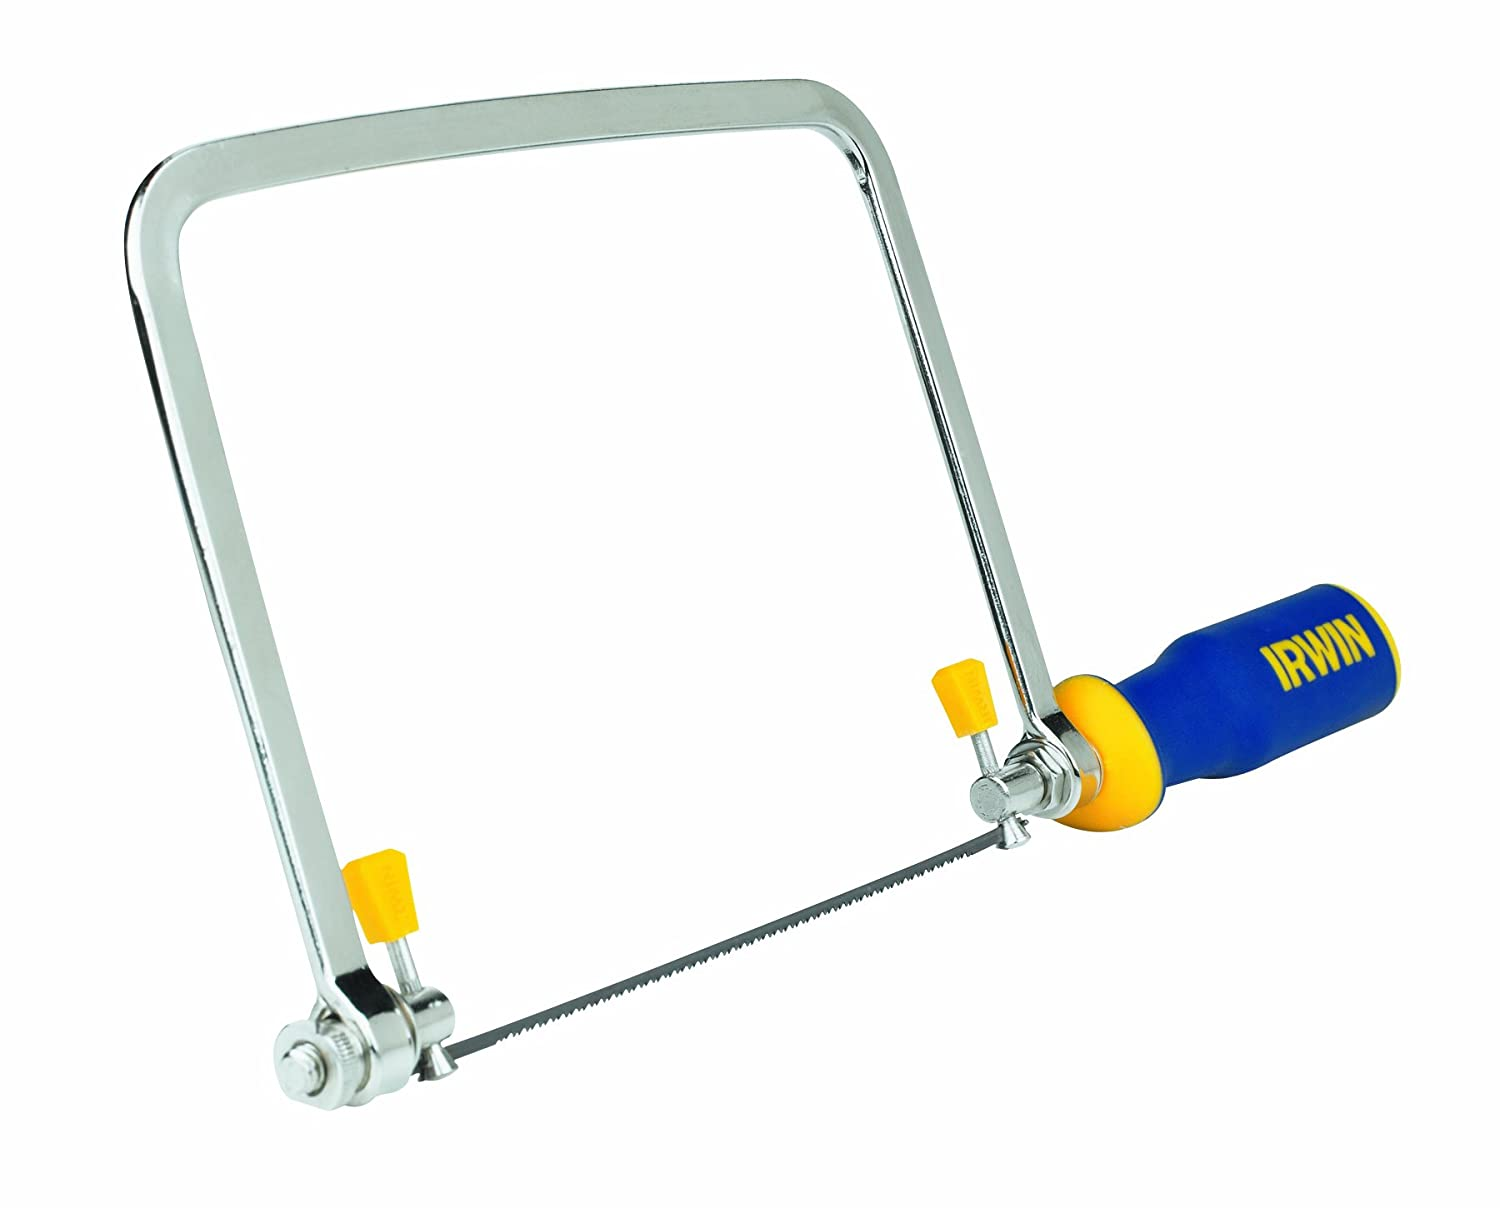 Irwin tools protouch coping saw 2014400 amazon keyboard keysfo